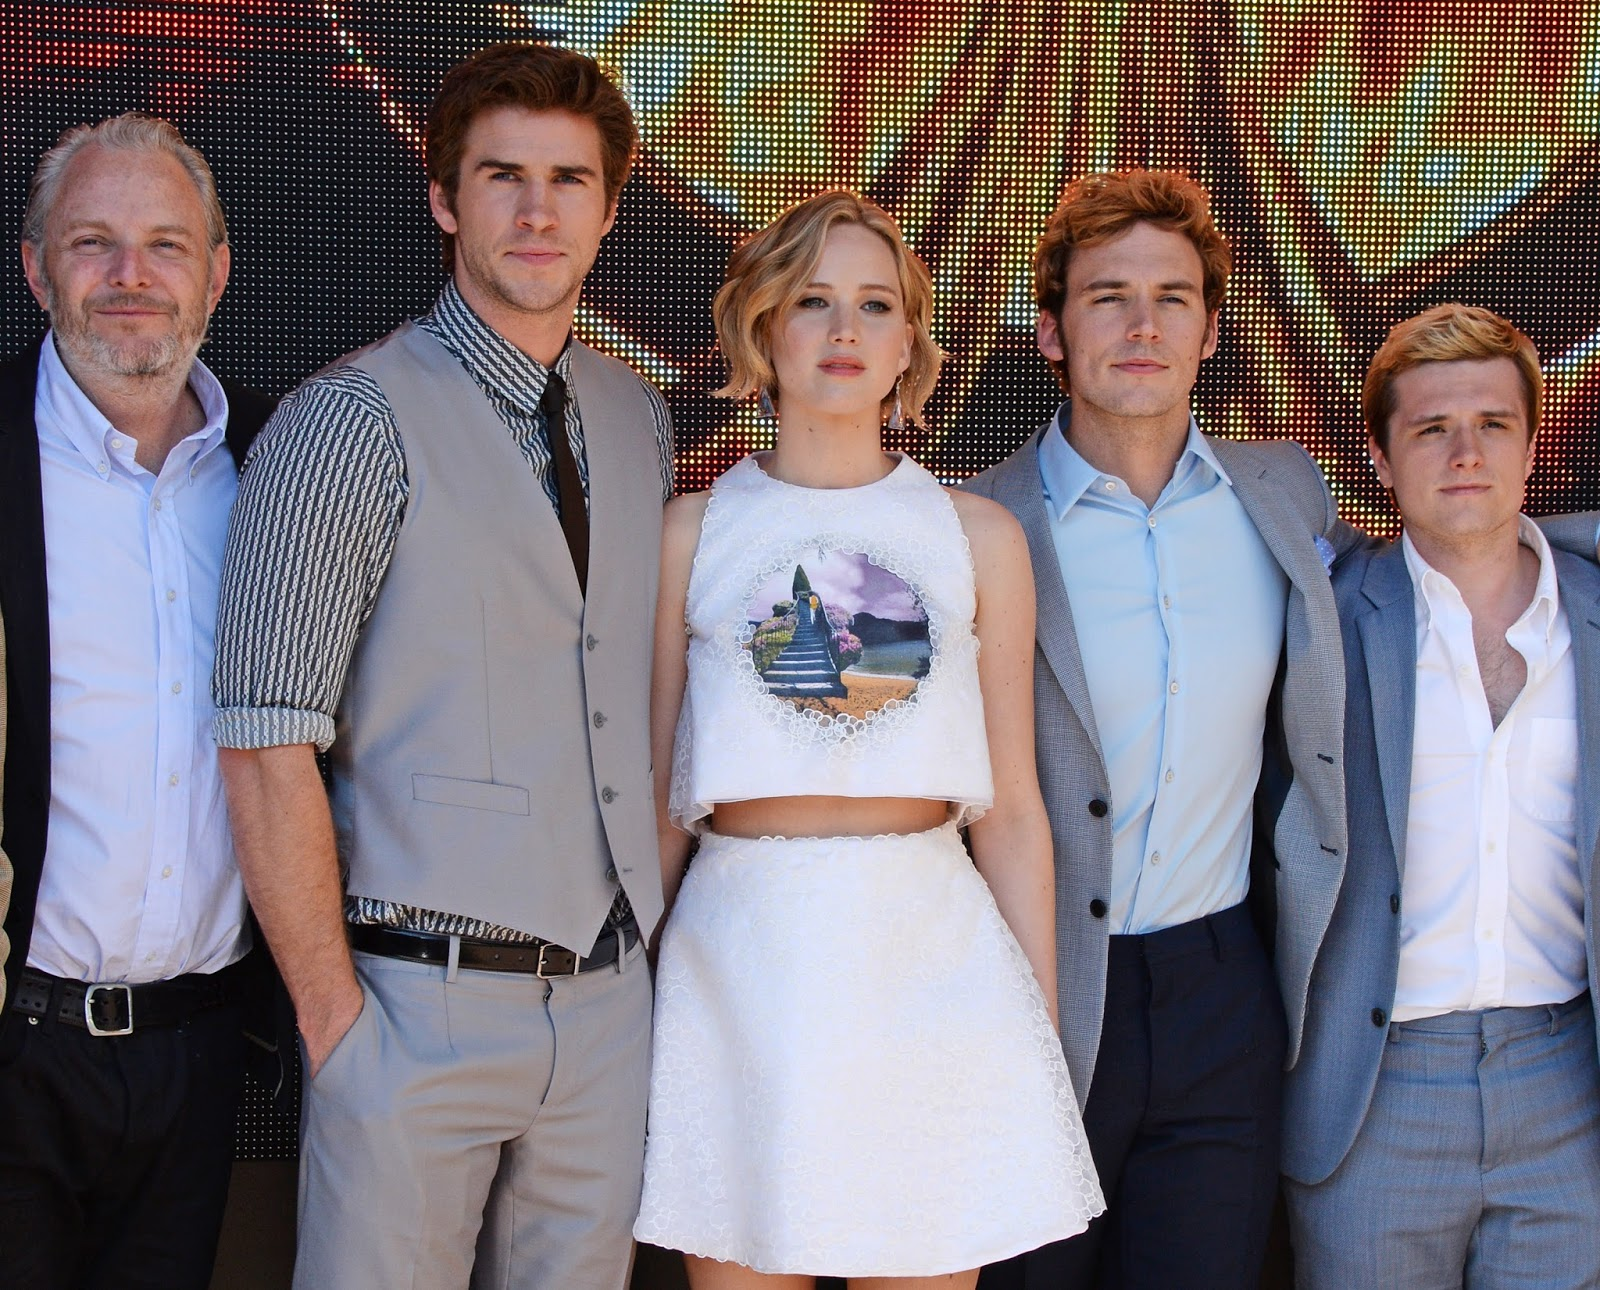 HUNGER GAMES: MOCKINGJAY PART 1 CAST PHOTOCALL AT THE 2014 CANNES FILM ...